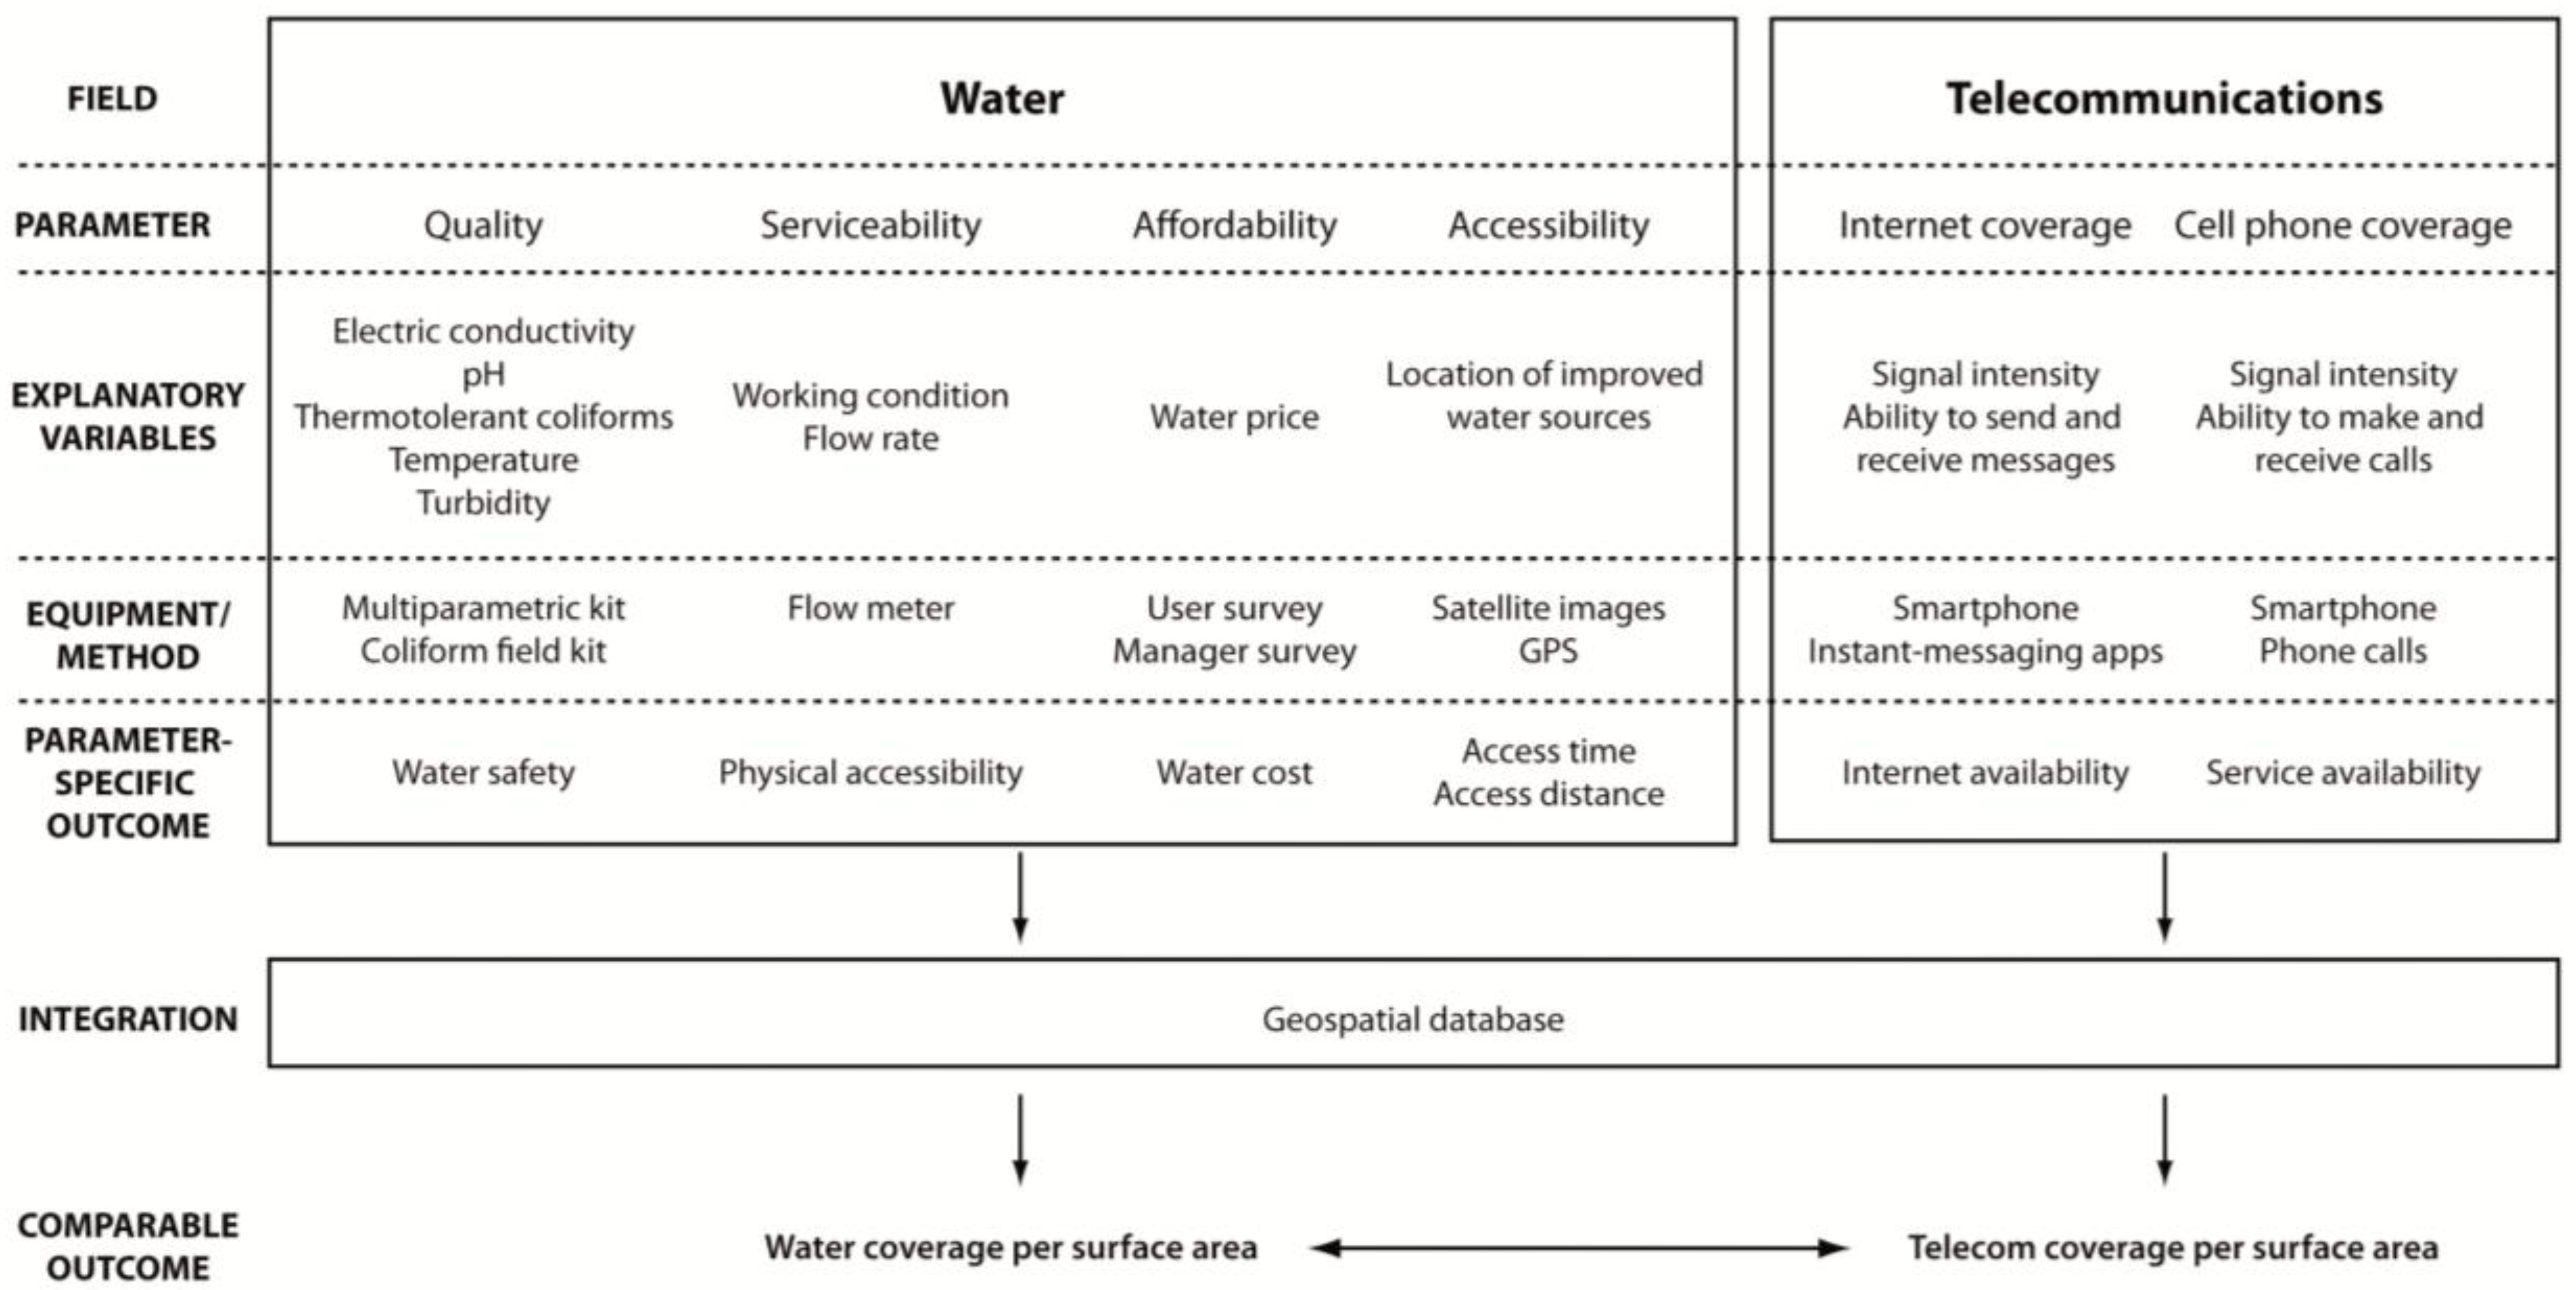 water free full text water versus wireless coverage in rural